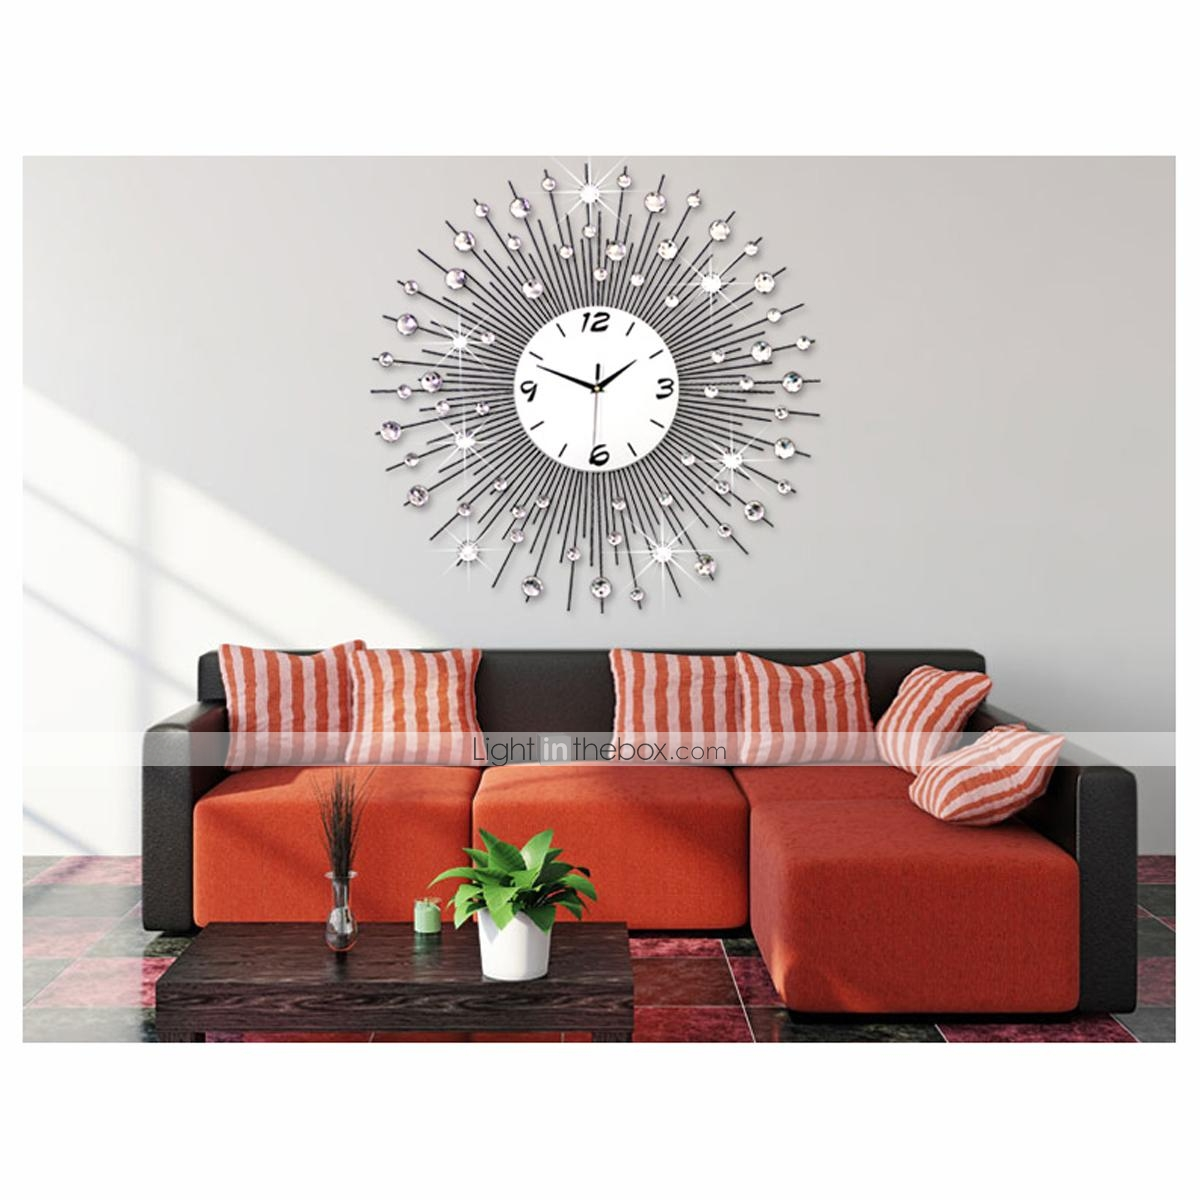 Extra large modern luxury scenic iron metal living room for Living room wall clocks